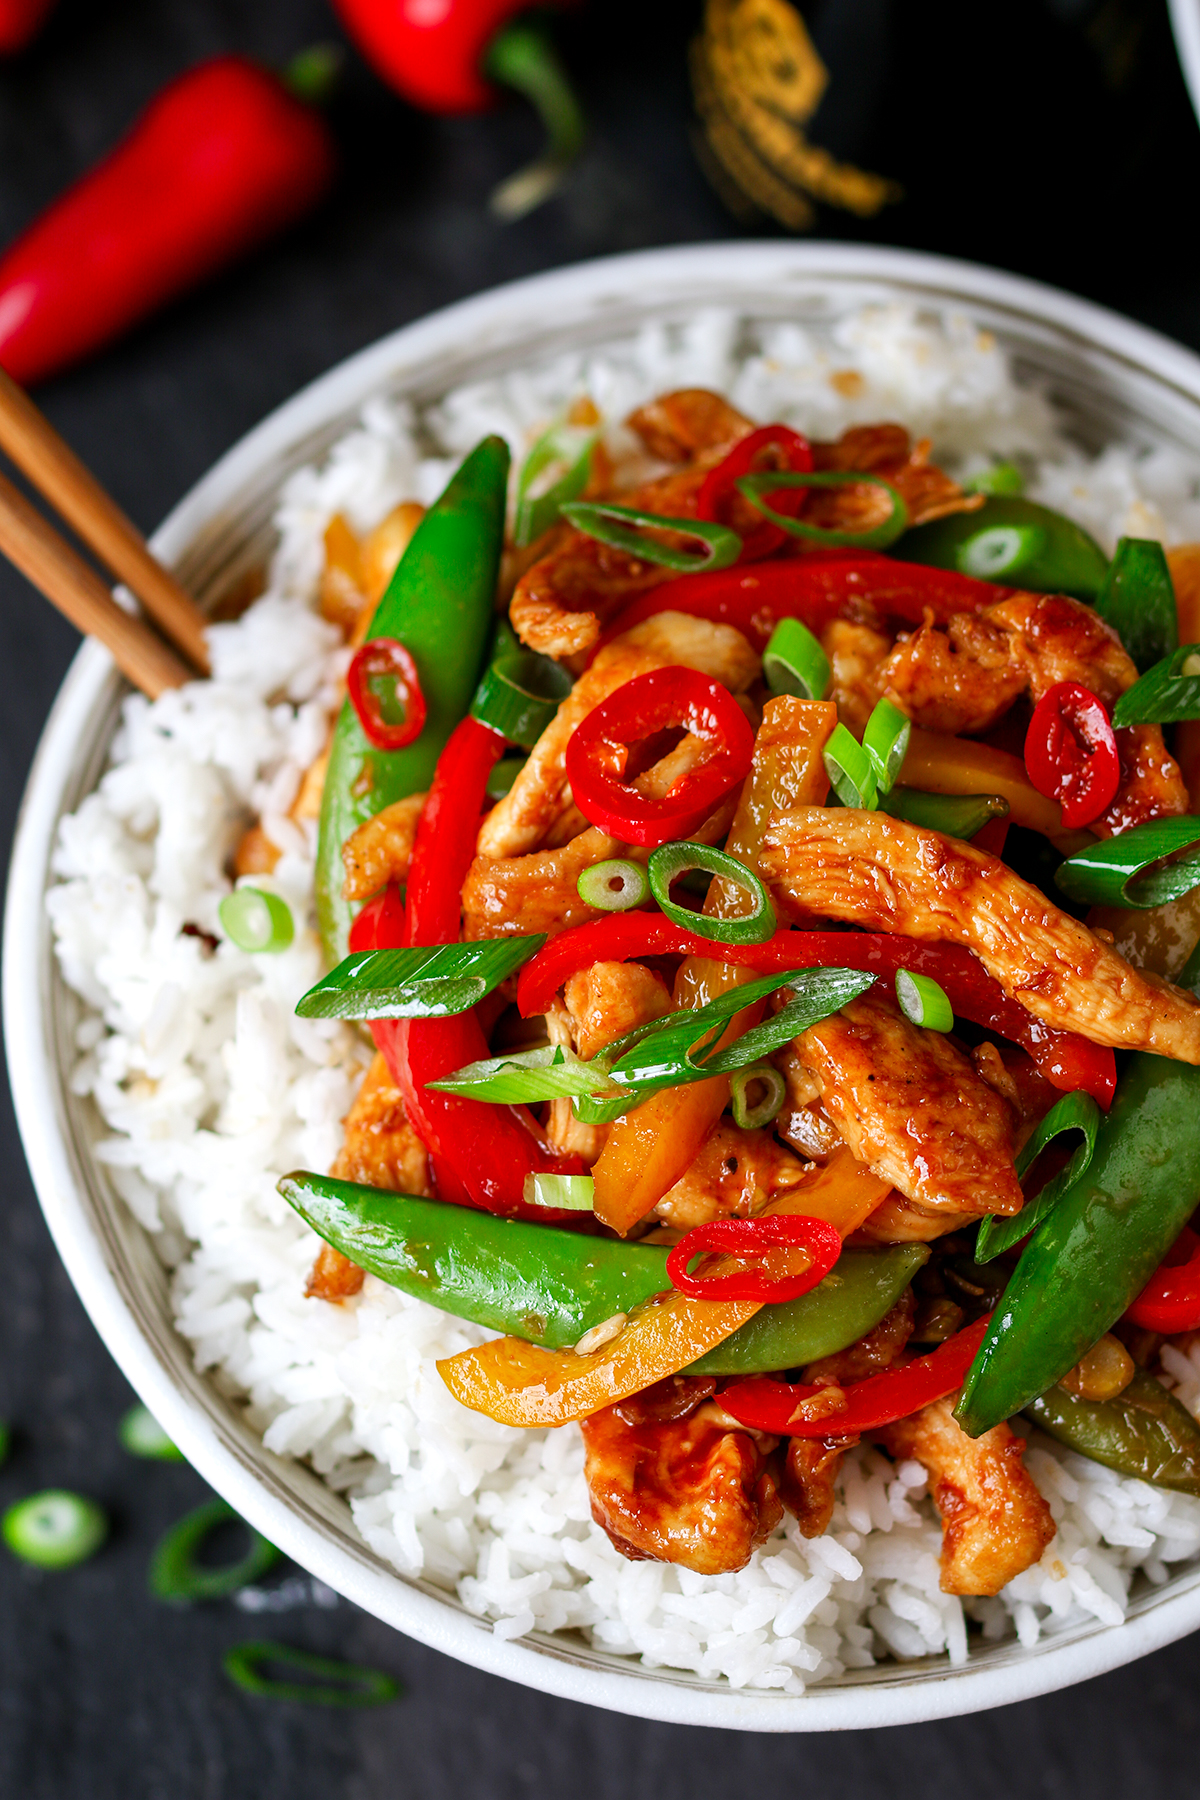 Spicy chicken and vegetable stir fry recipe -